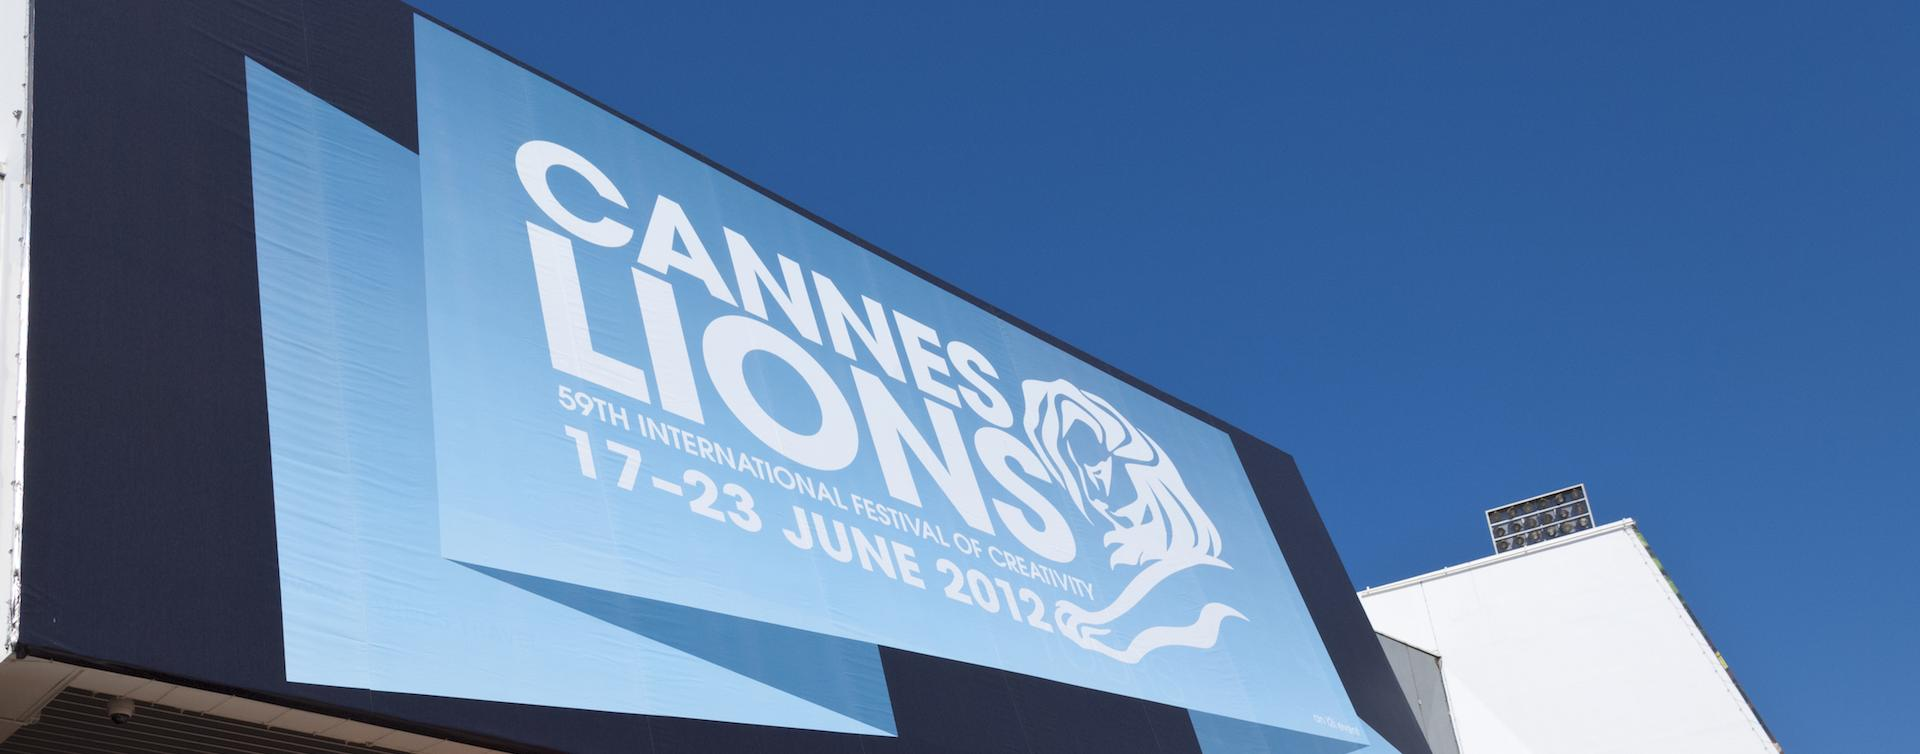 Apartments Rentals and accommodation at CANNES LIONS